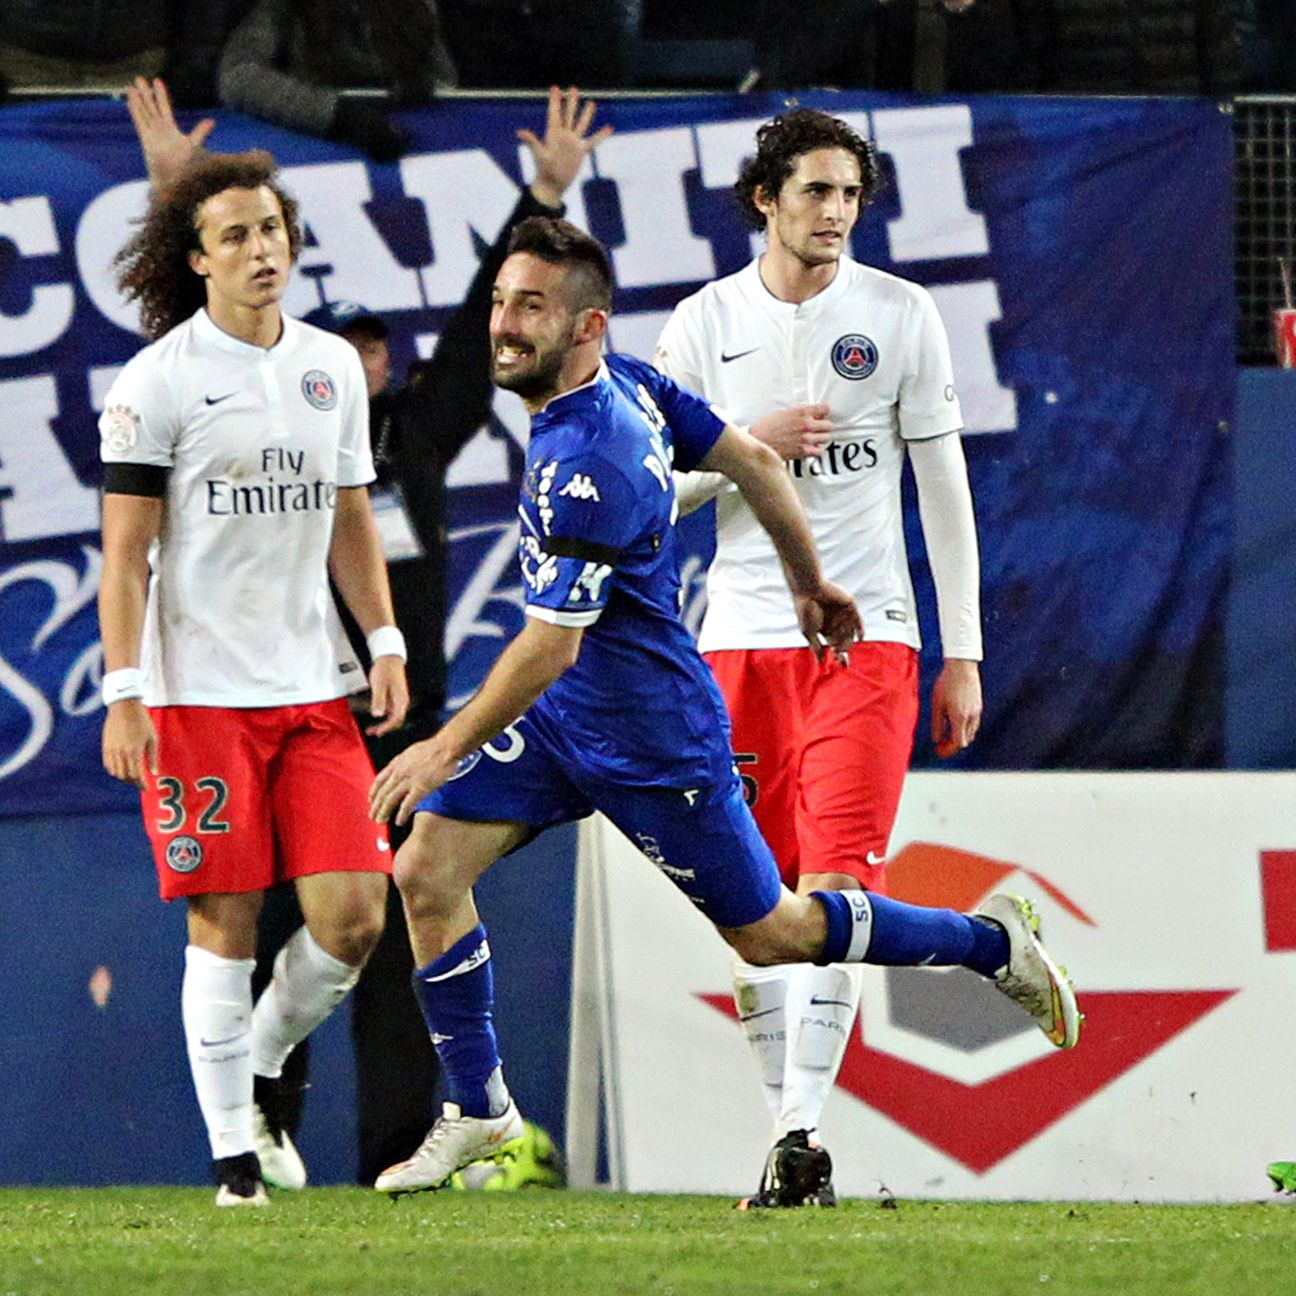 PSG's defence coughed up a two-goal lead in their 4-2 defeat at Bastia on Saturday.